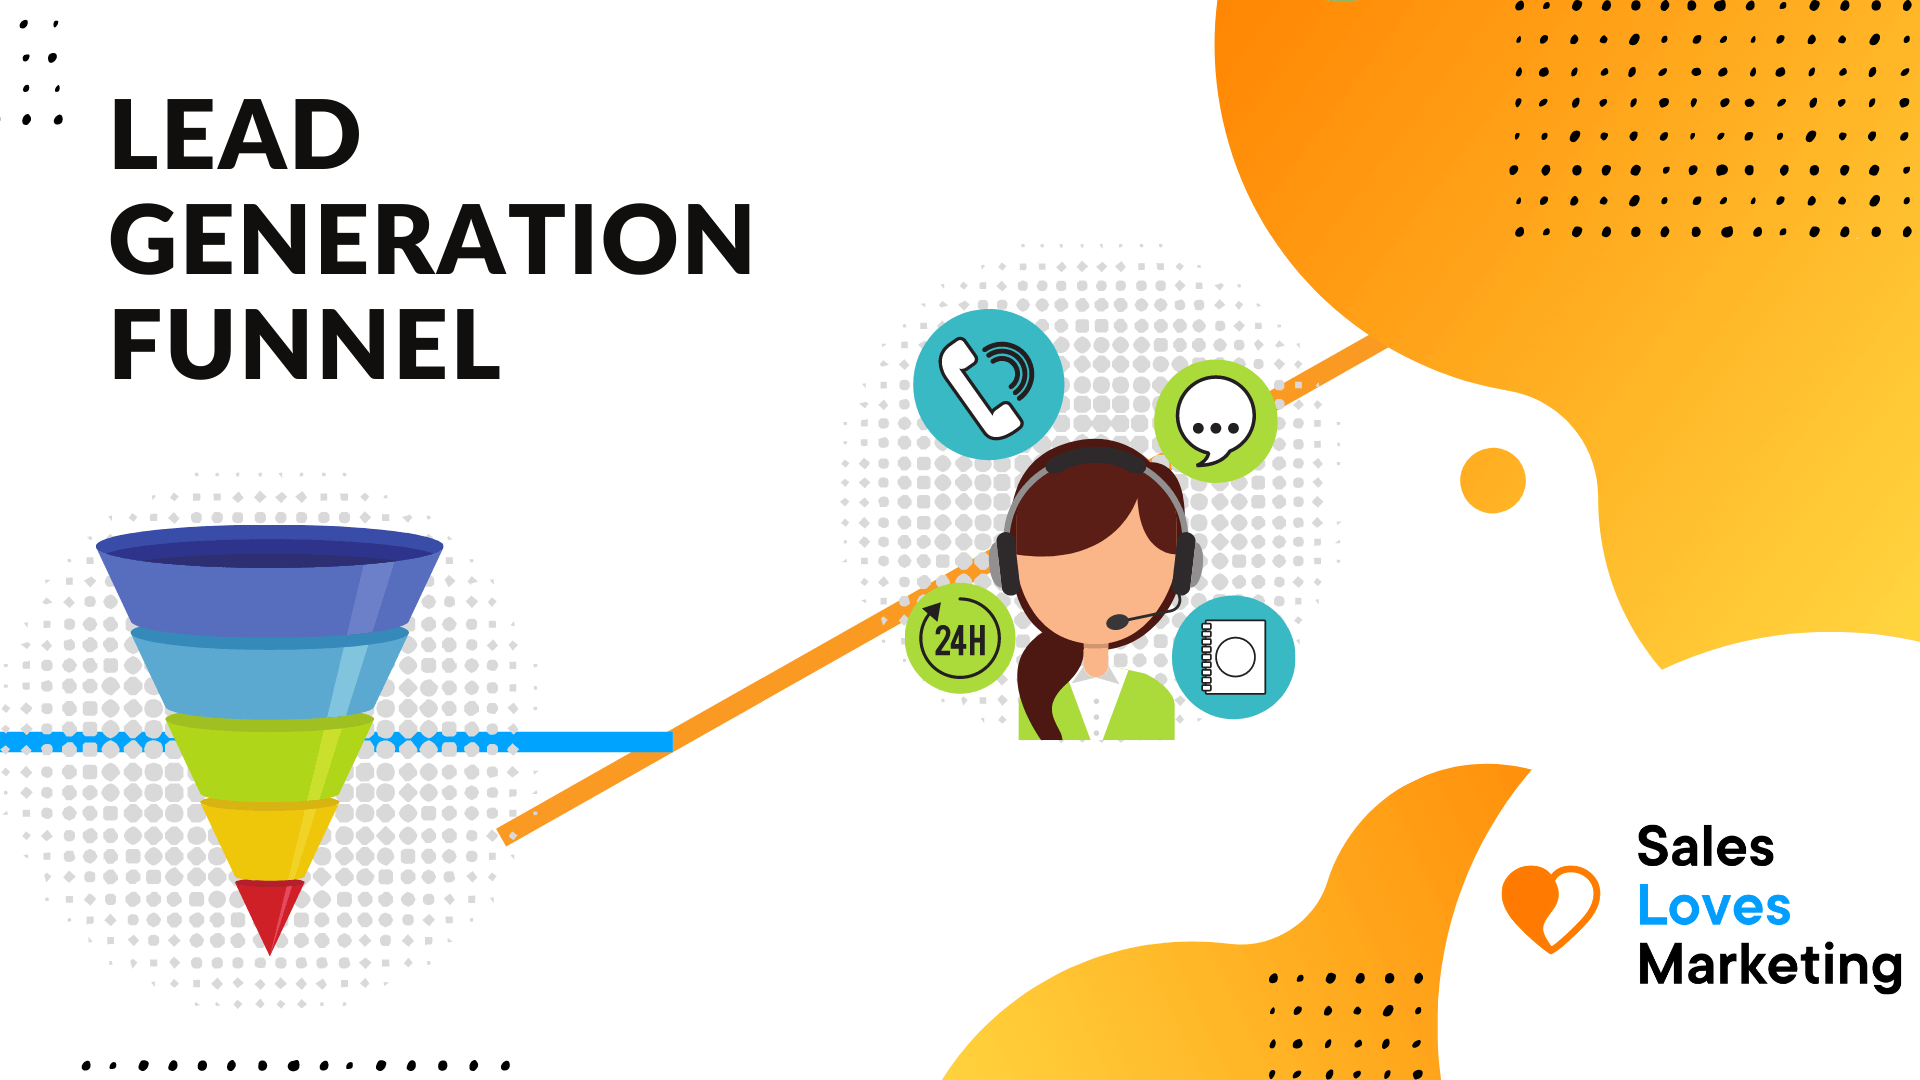 Lead generation funnel explained